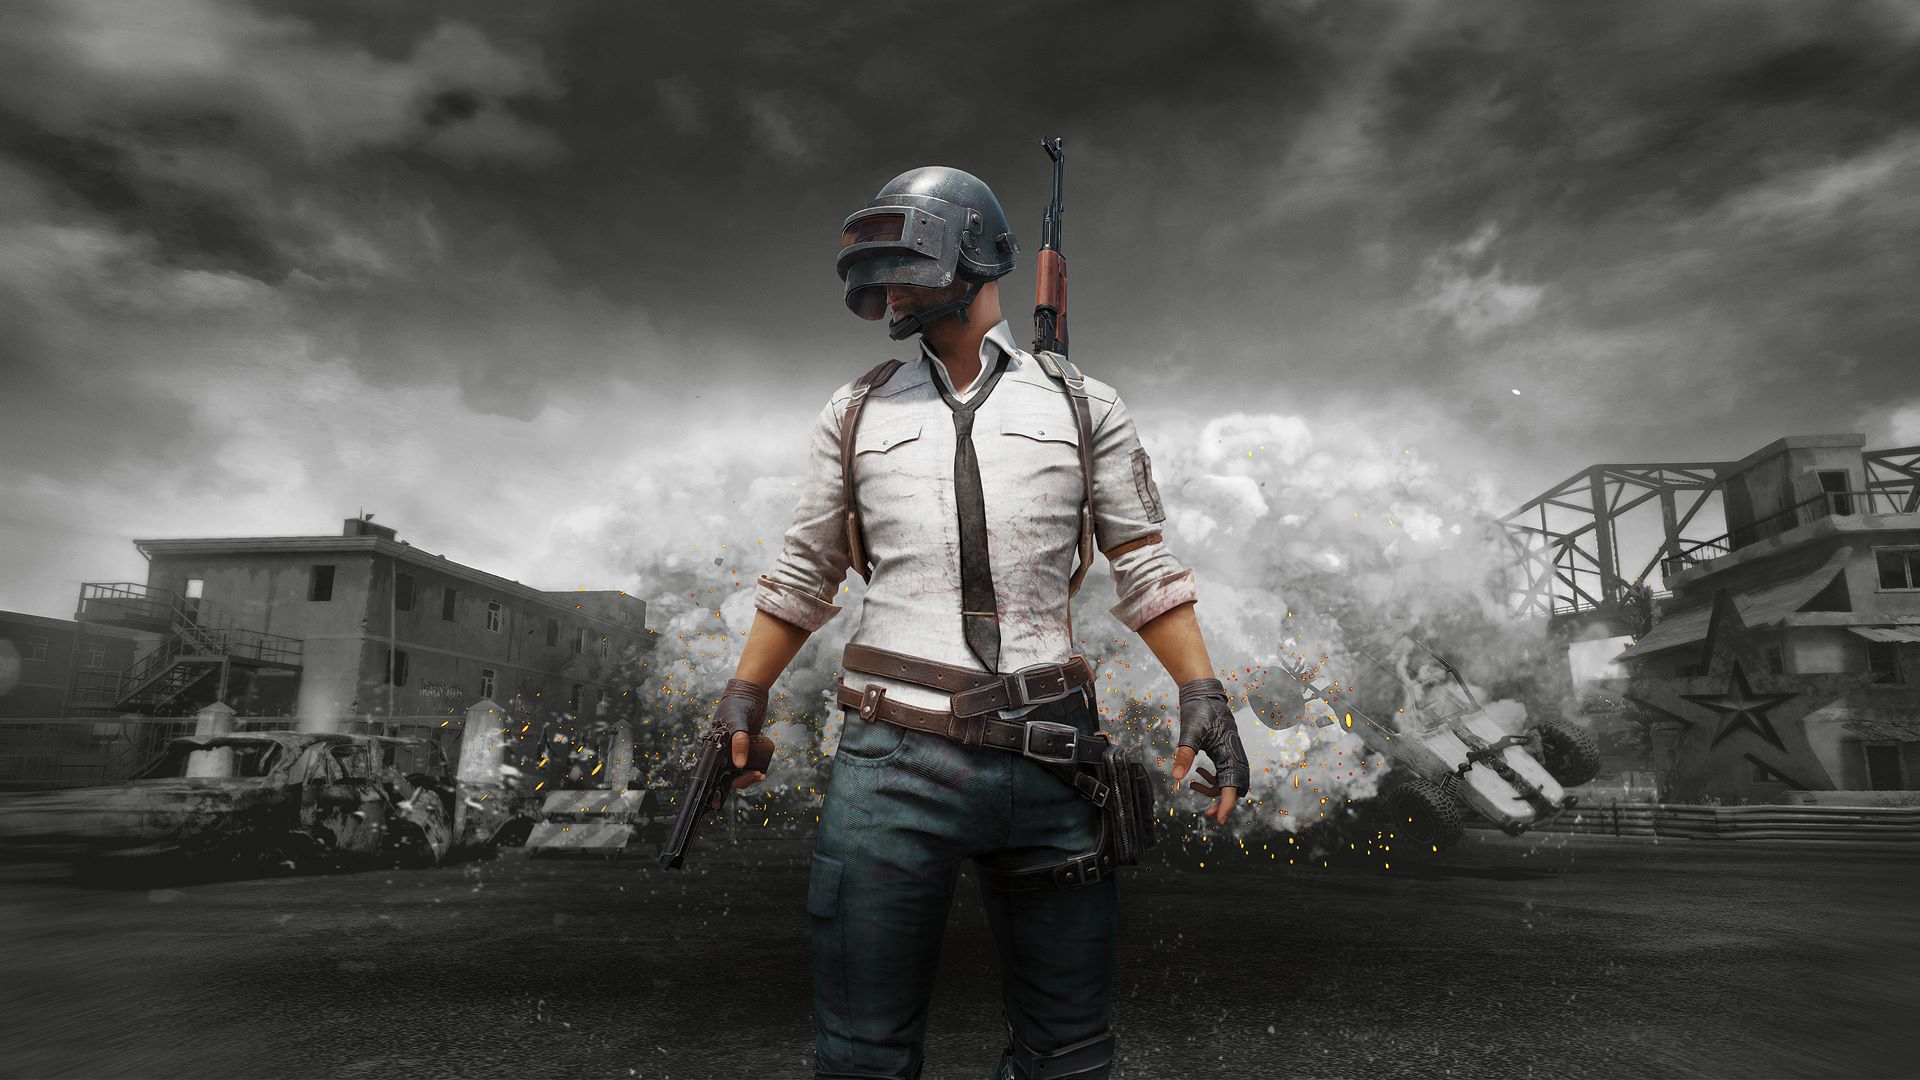 Pubg Lite Wallpaper Hd: PUBG Lite Is A Bespoke New Version For Low-spec Computers